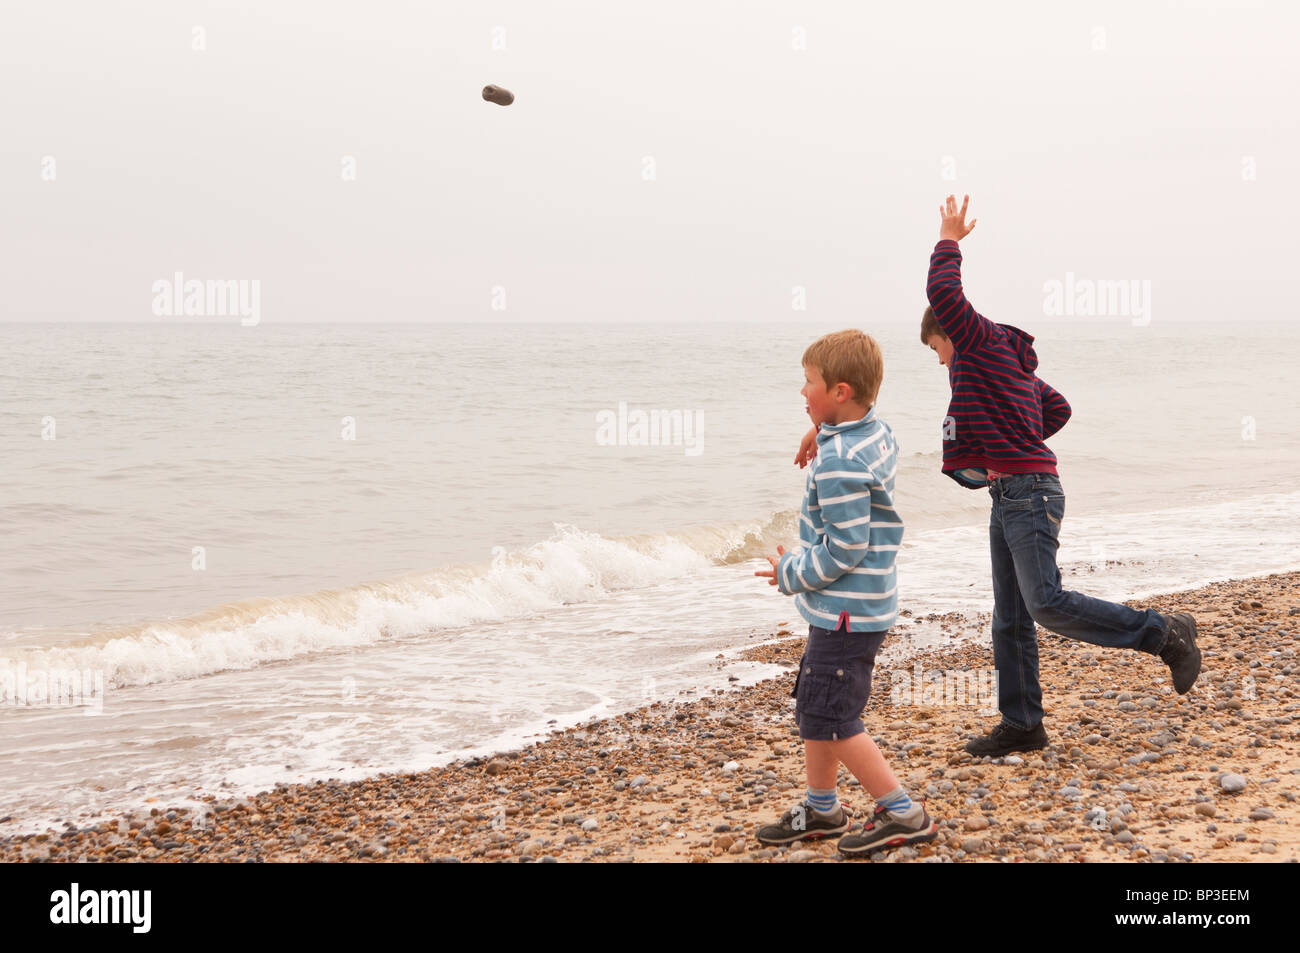 A MODEL RELEASED picture of two boys ( 6 & 10 ) throwing stones into the sea on a UK beach - Stock Image